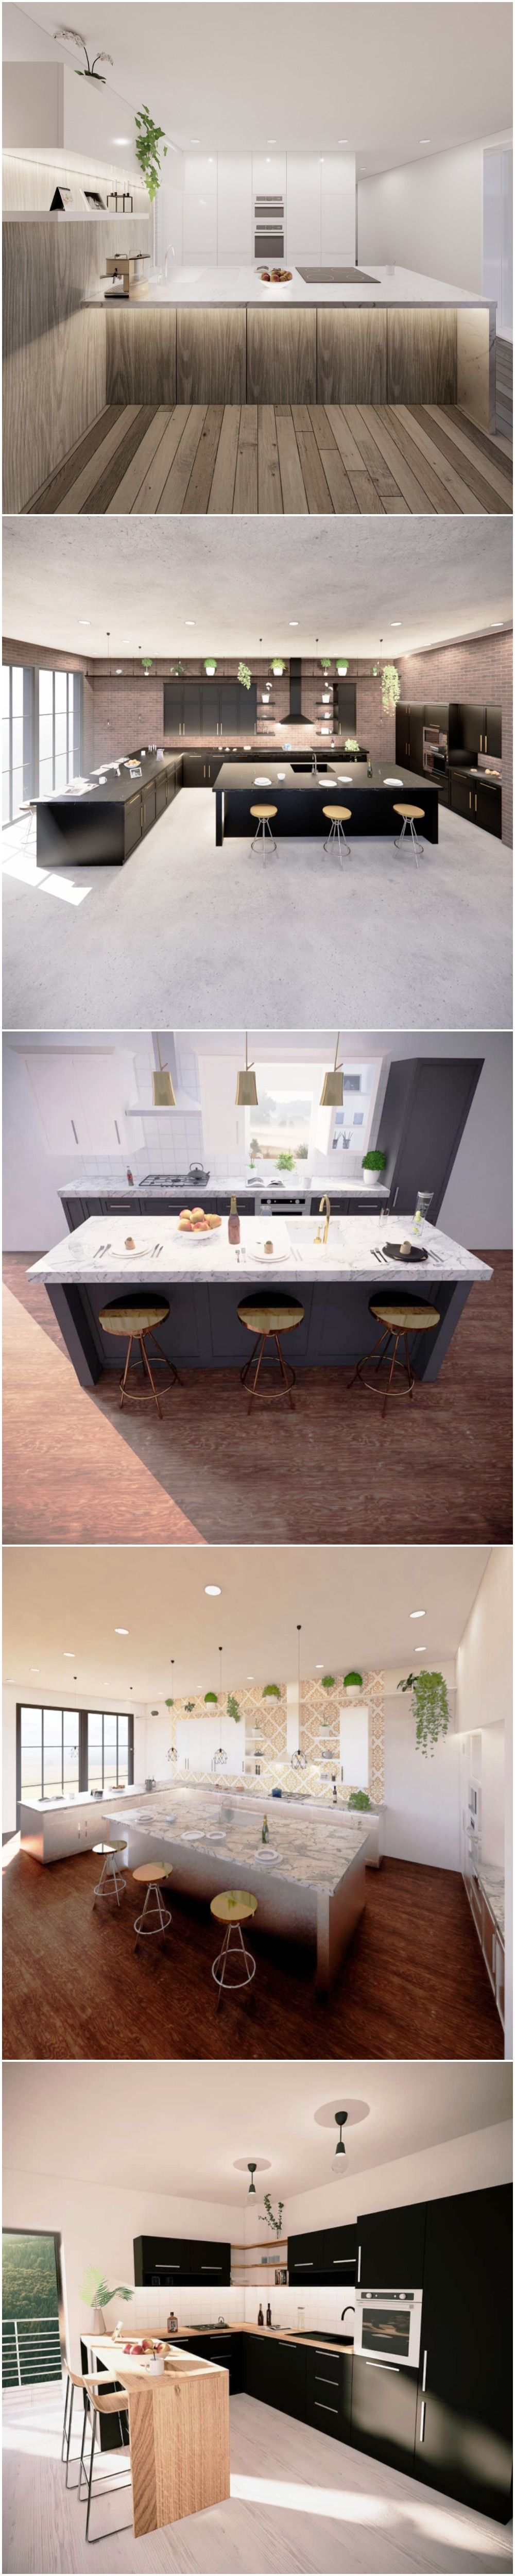 Revit Family Kitchen Cabinets 1000 Possibilities In 2020 Revit Family Family Kitchen Parametric